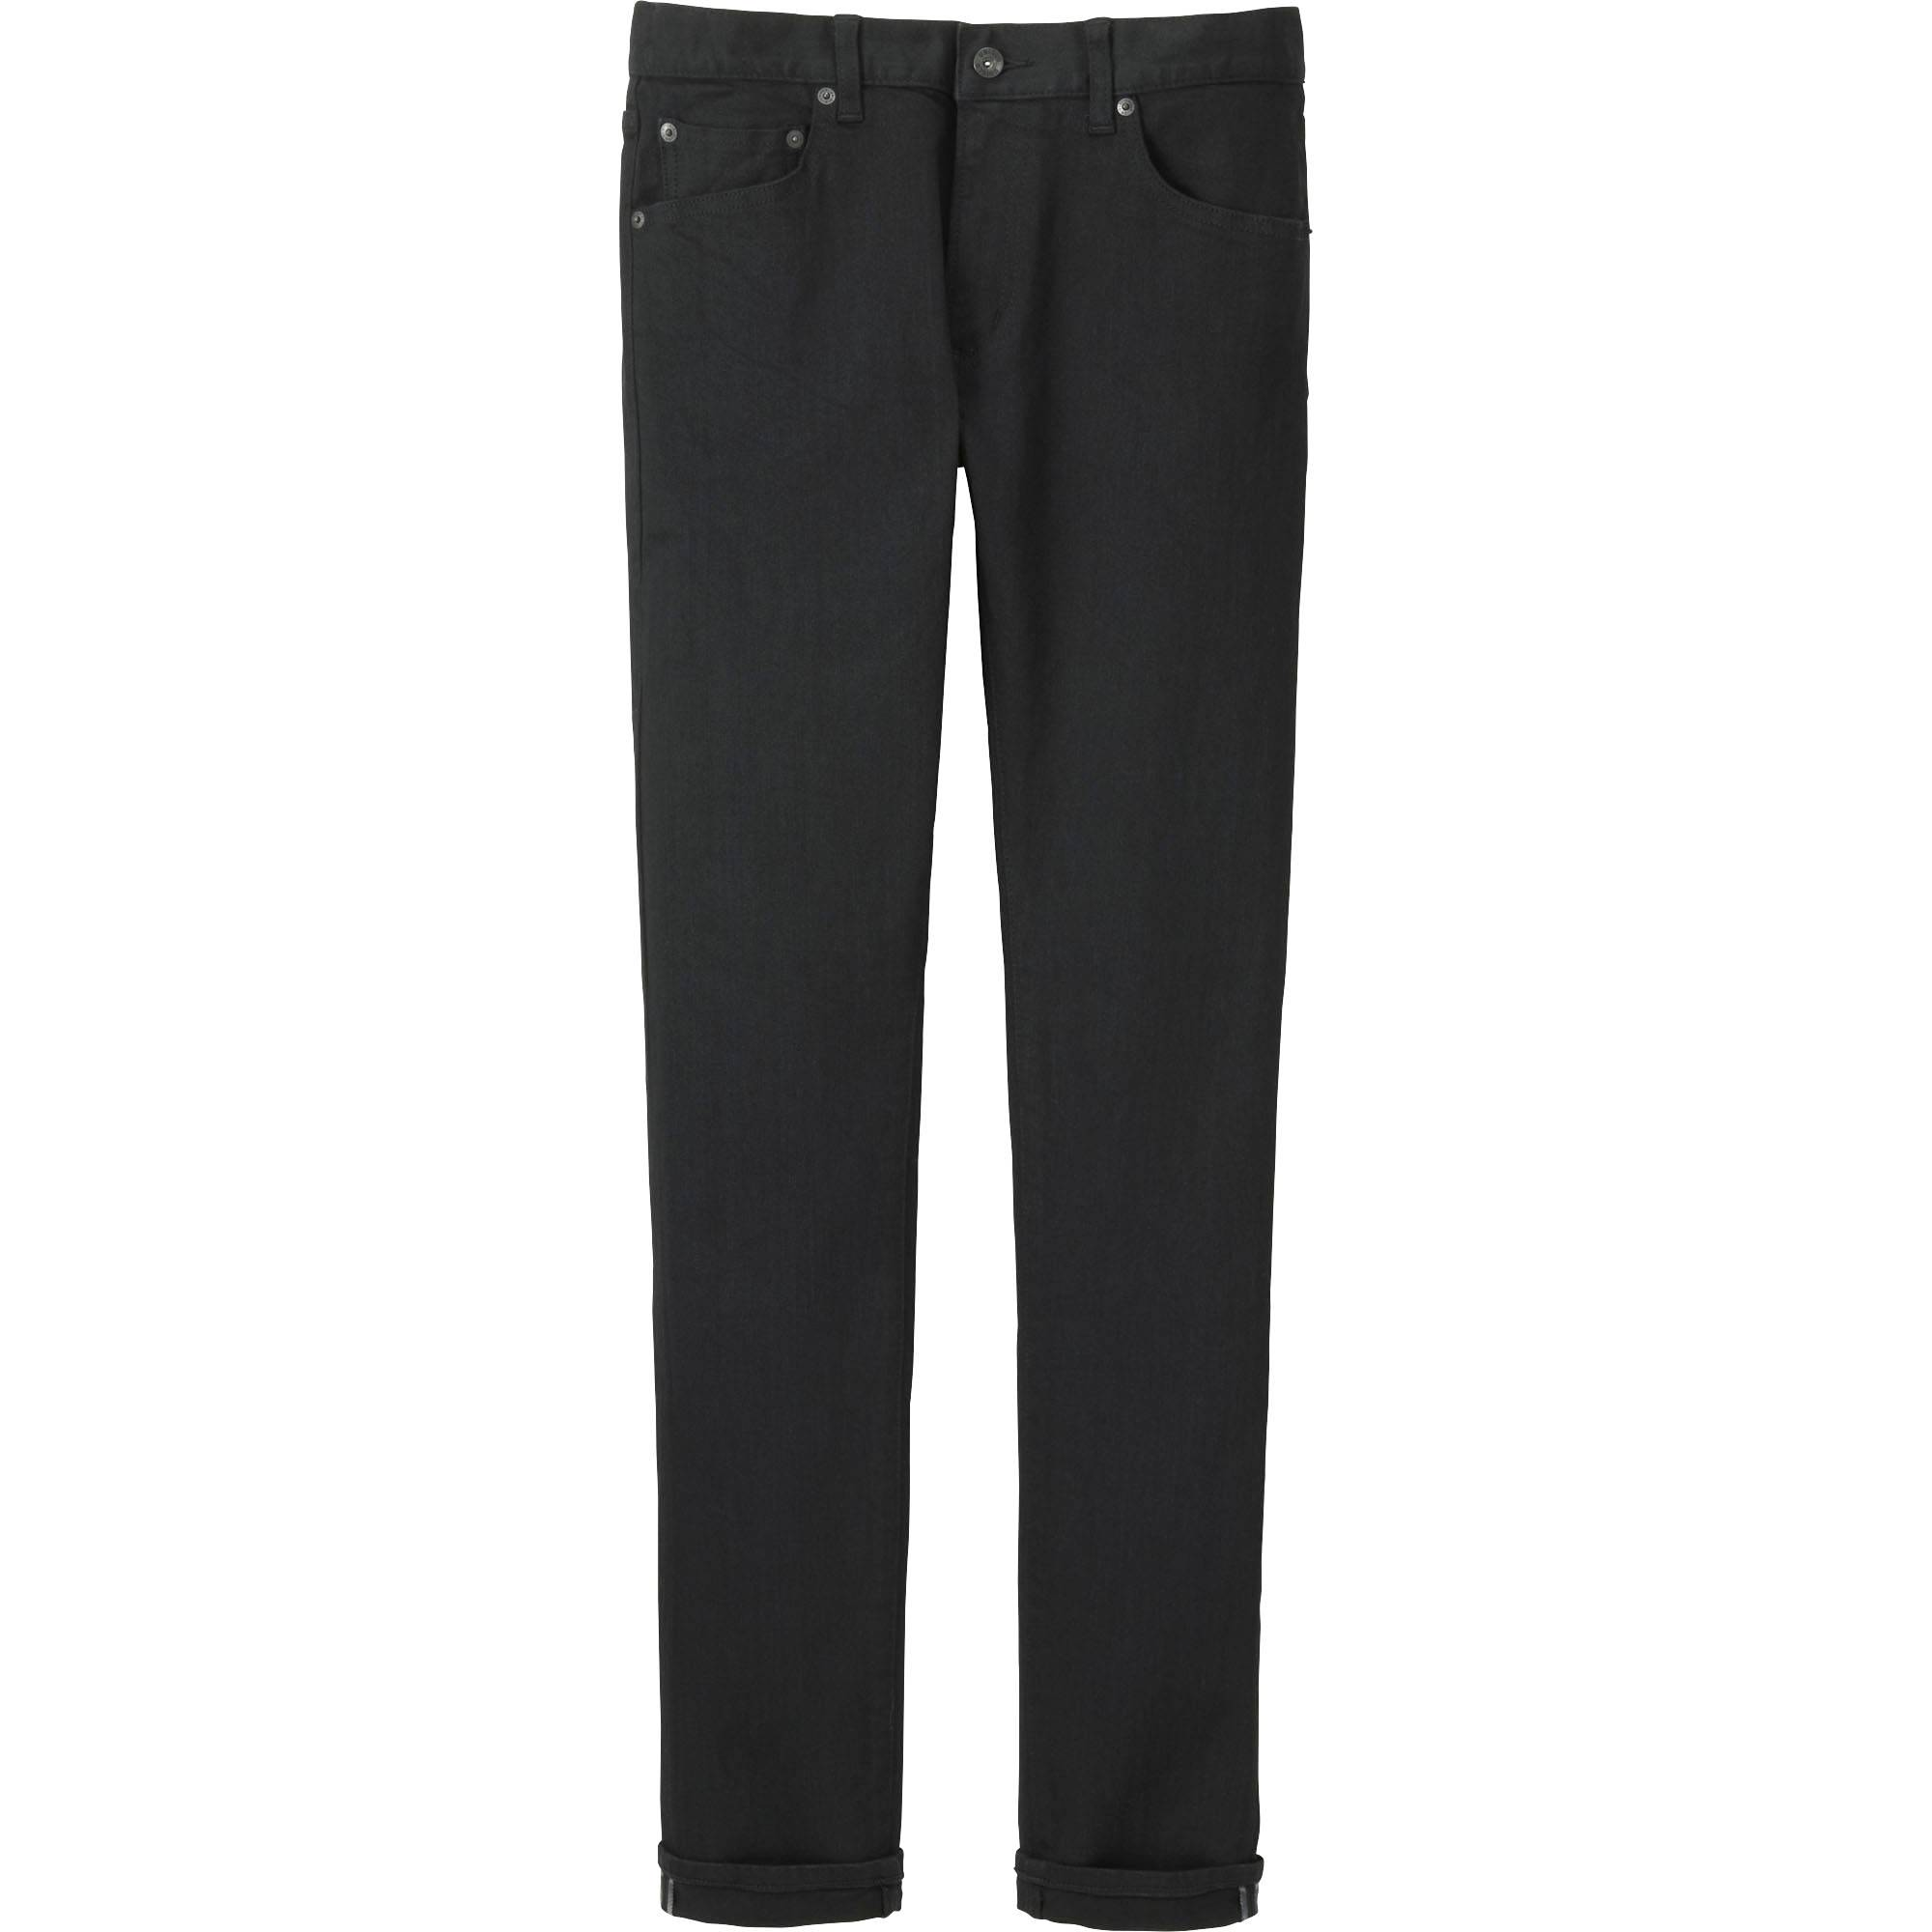 MEN STRETCH SELVEDGE SKINNY JEANS | UNIQLO US